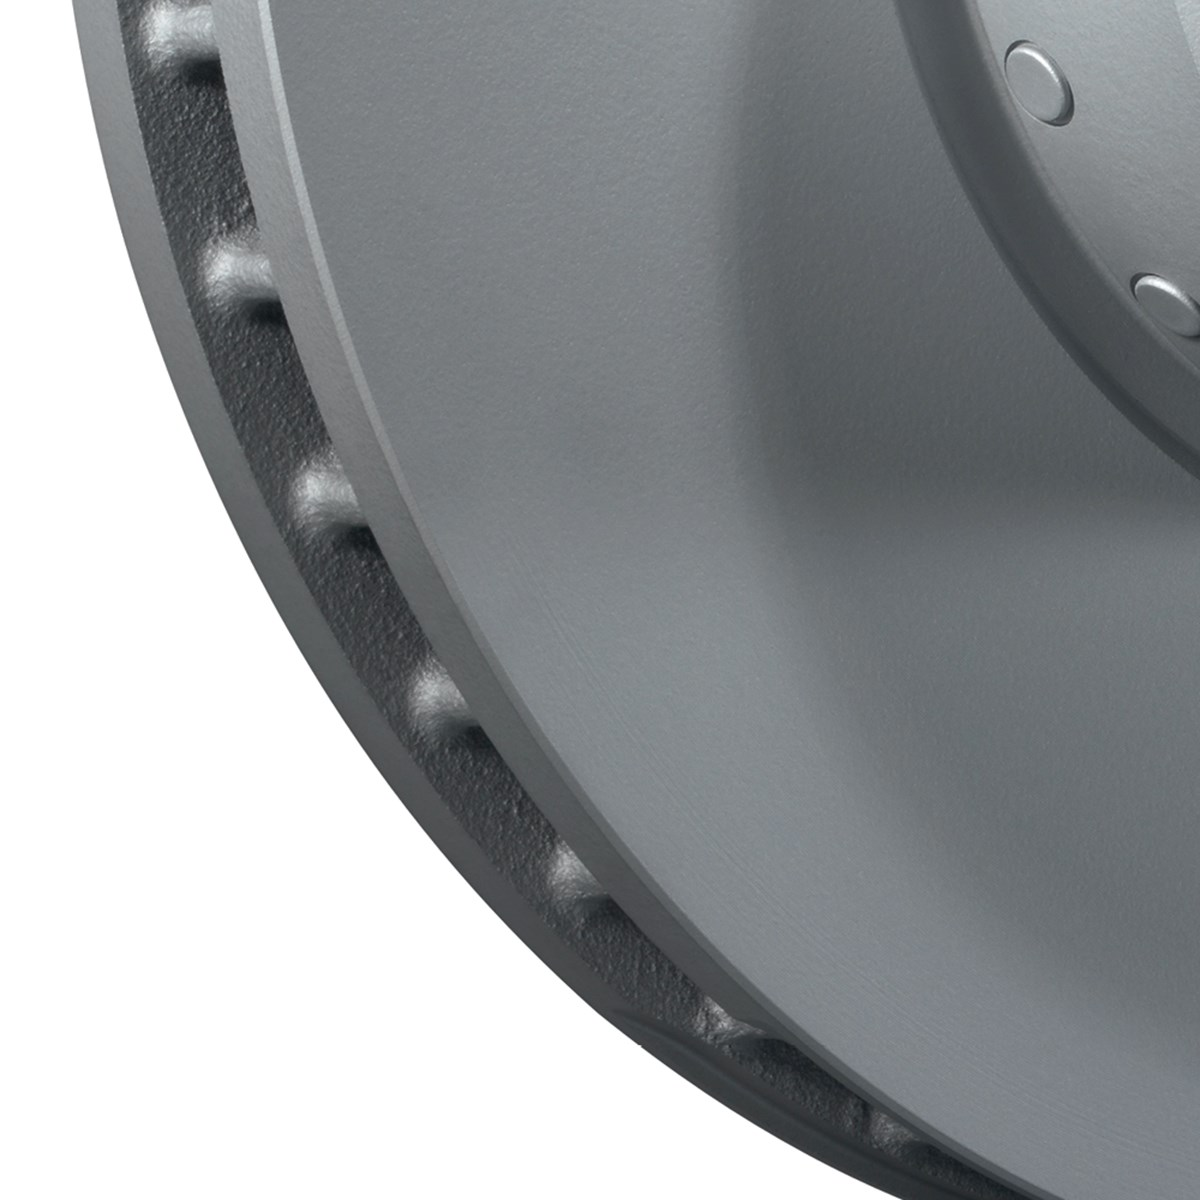 Coated brake discs - detail view